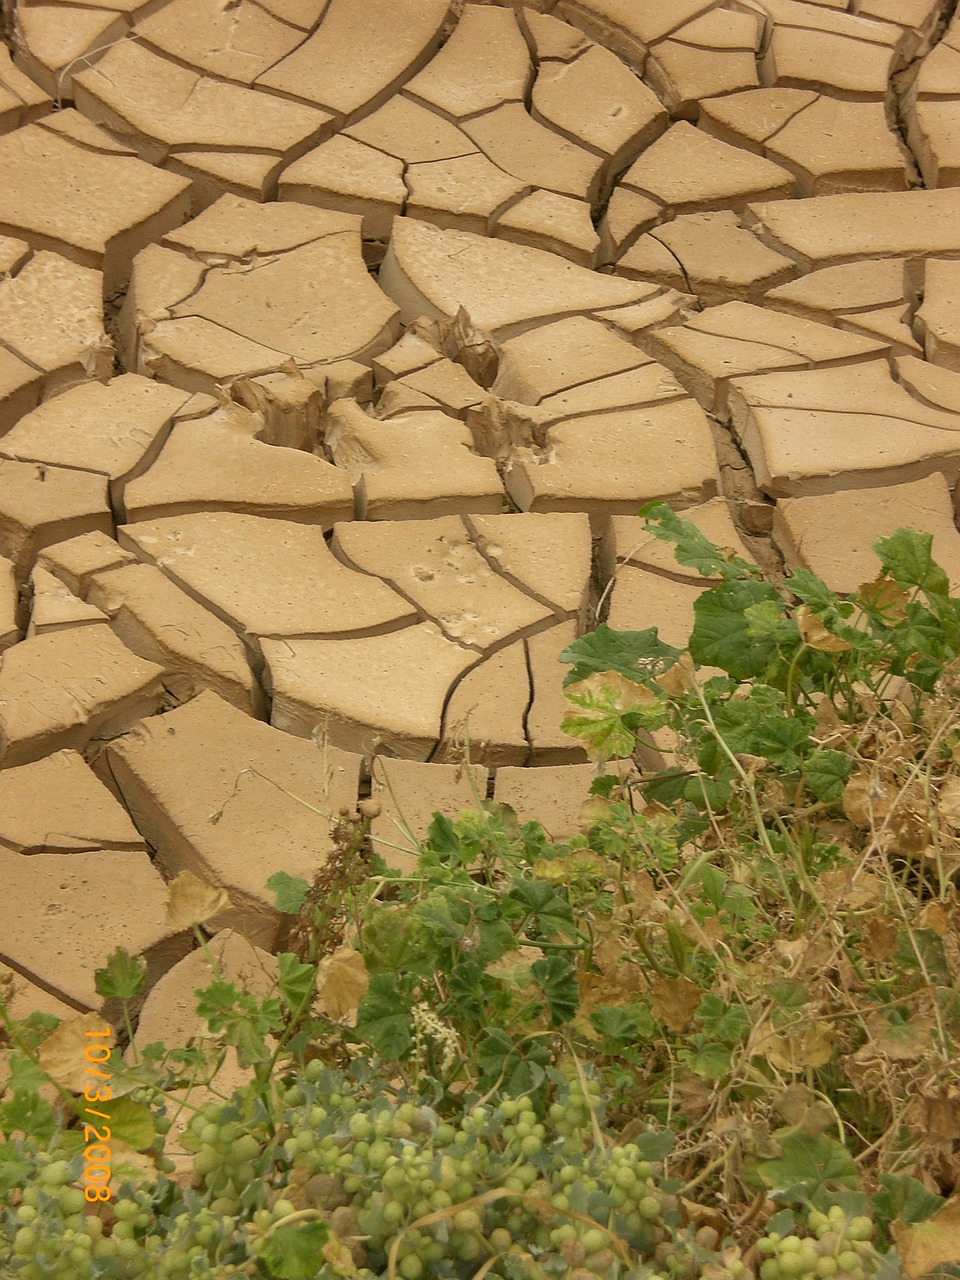 drought dehydration of a nation